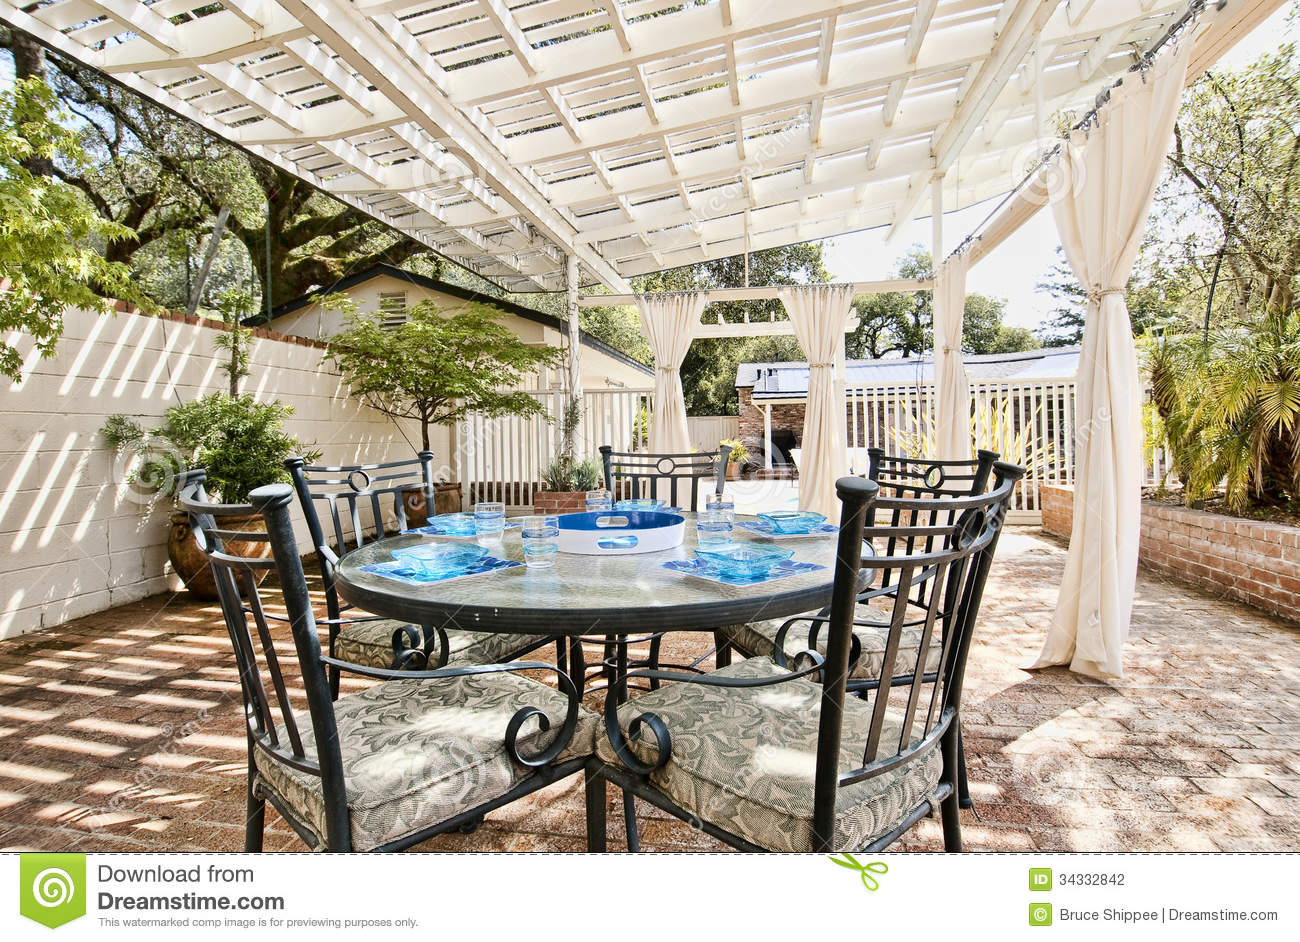 Patio ext rieur photographie stock image 34332842 - Photo patio exterieur ...